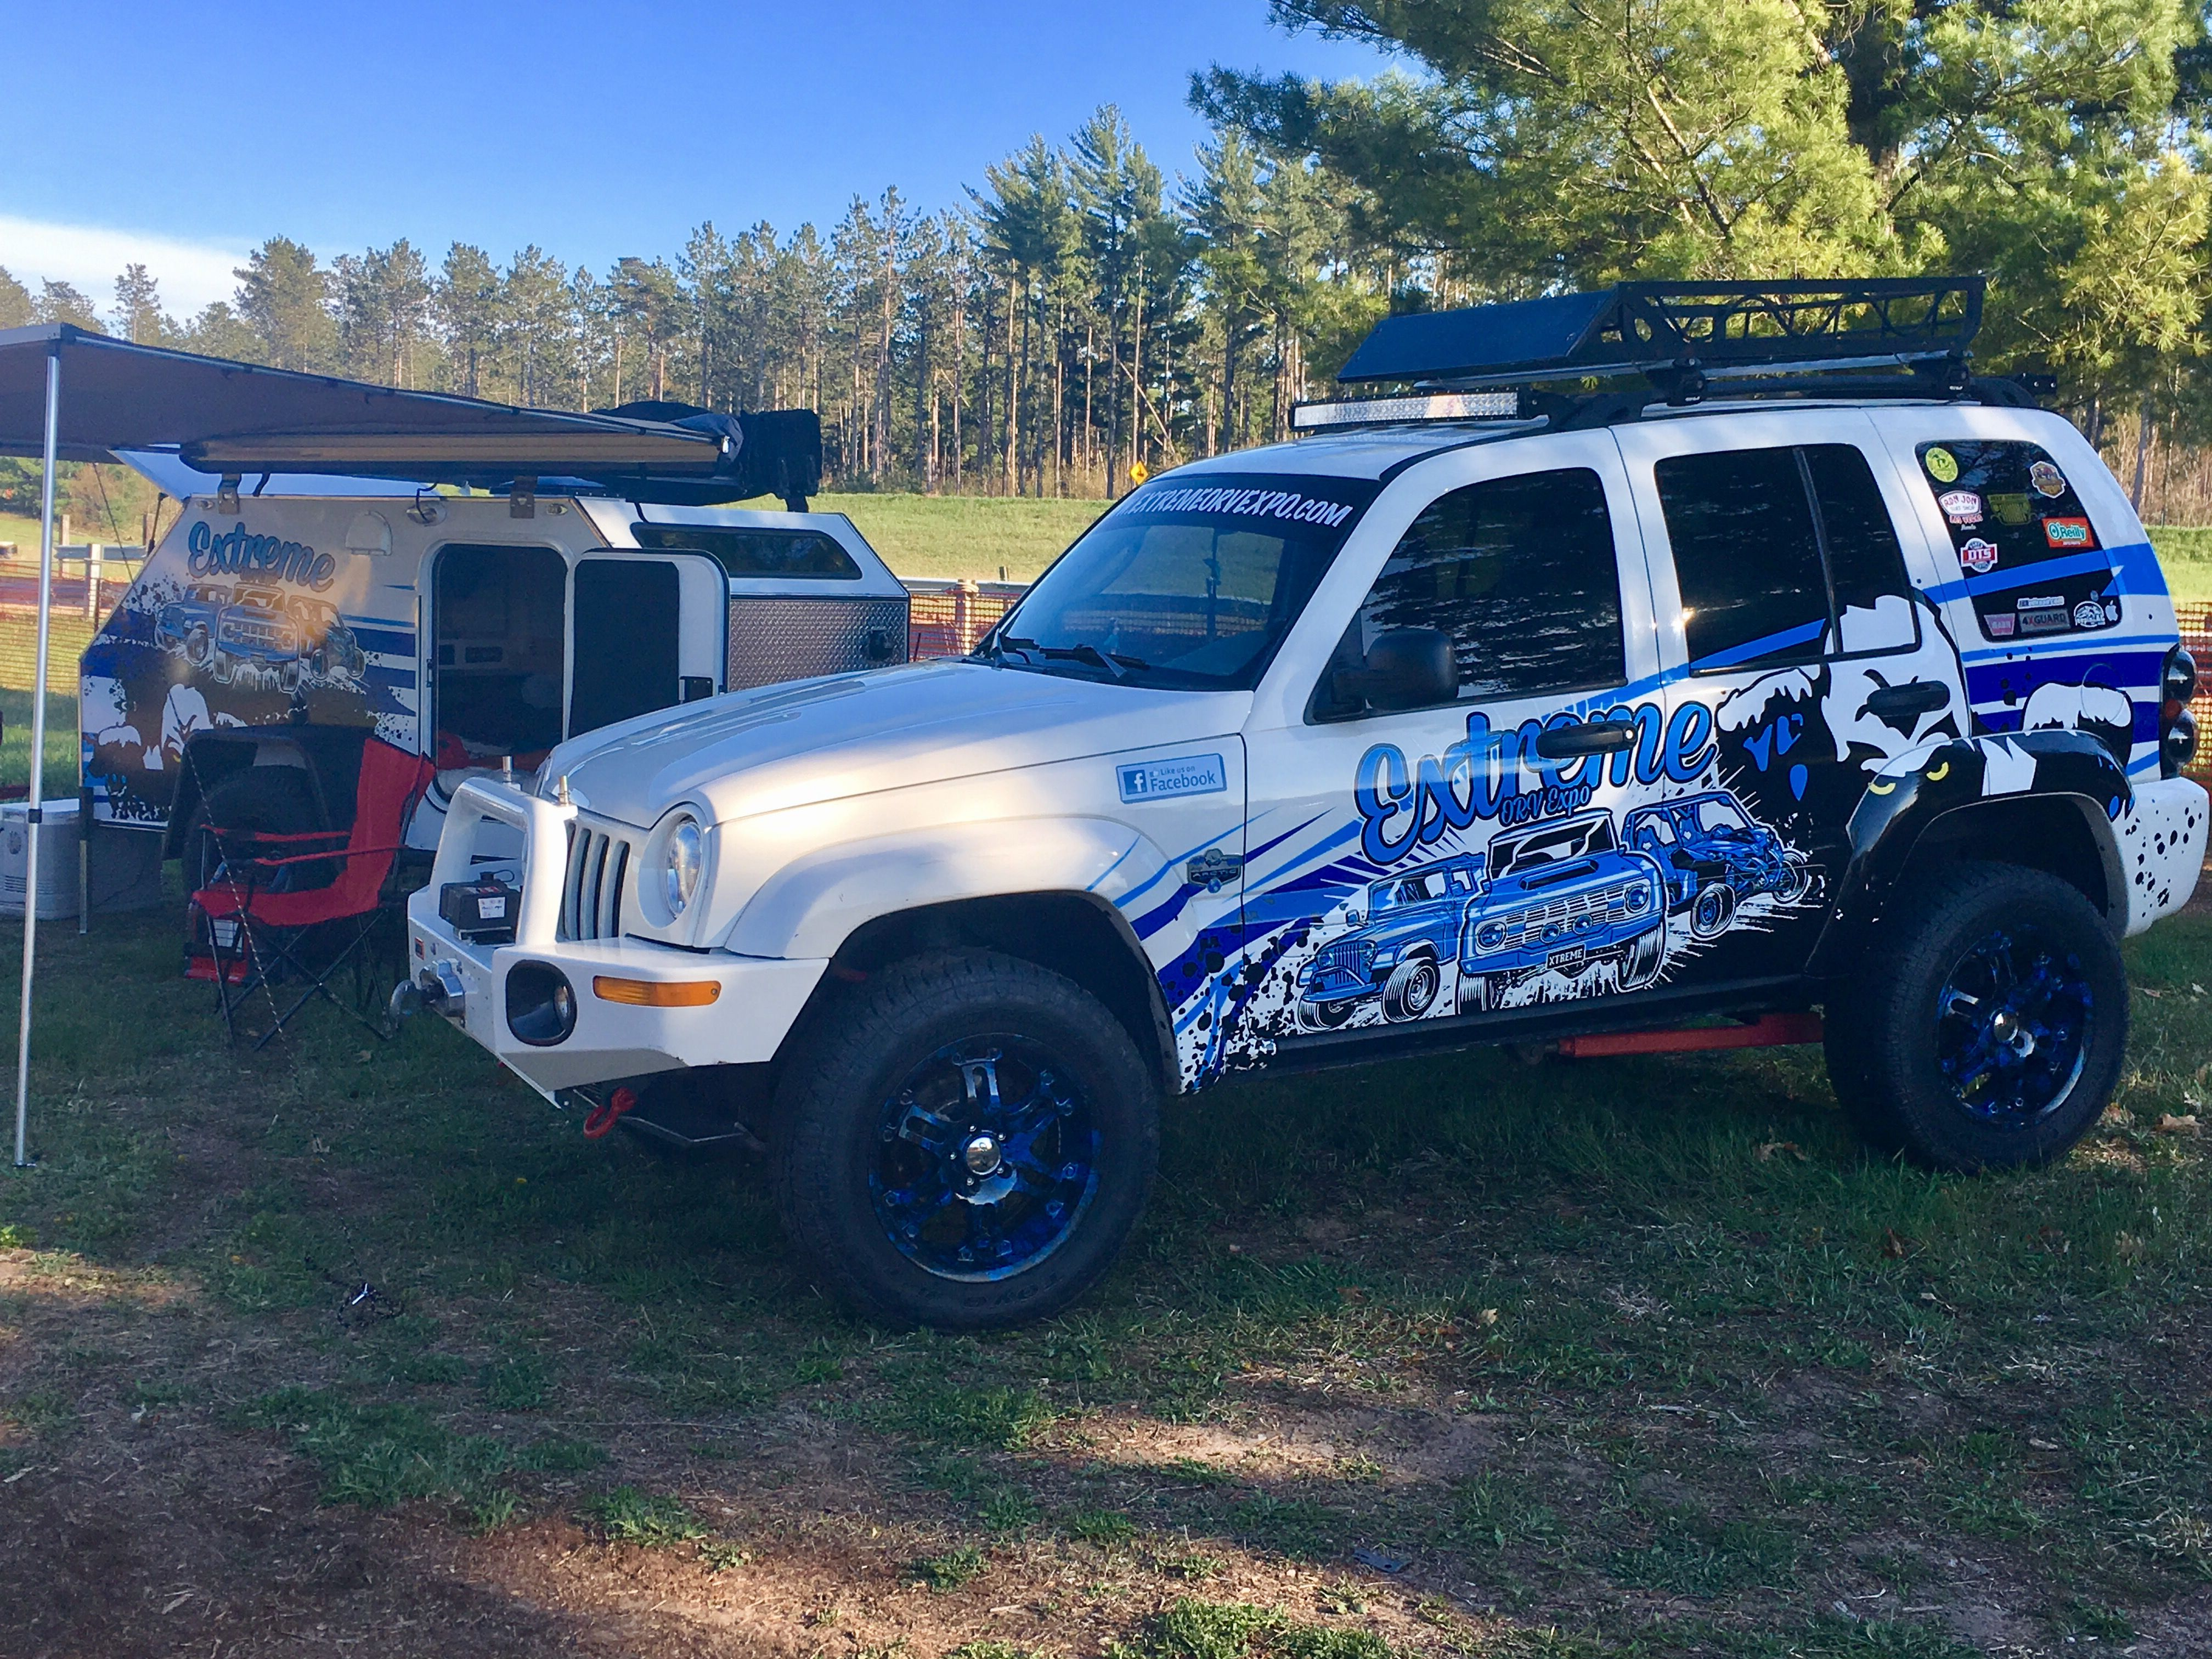 Pin By Mark Mensch On Extreme Orv Expo Monster Trucks Offroad Trucks